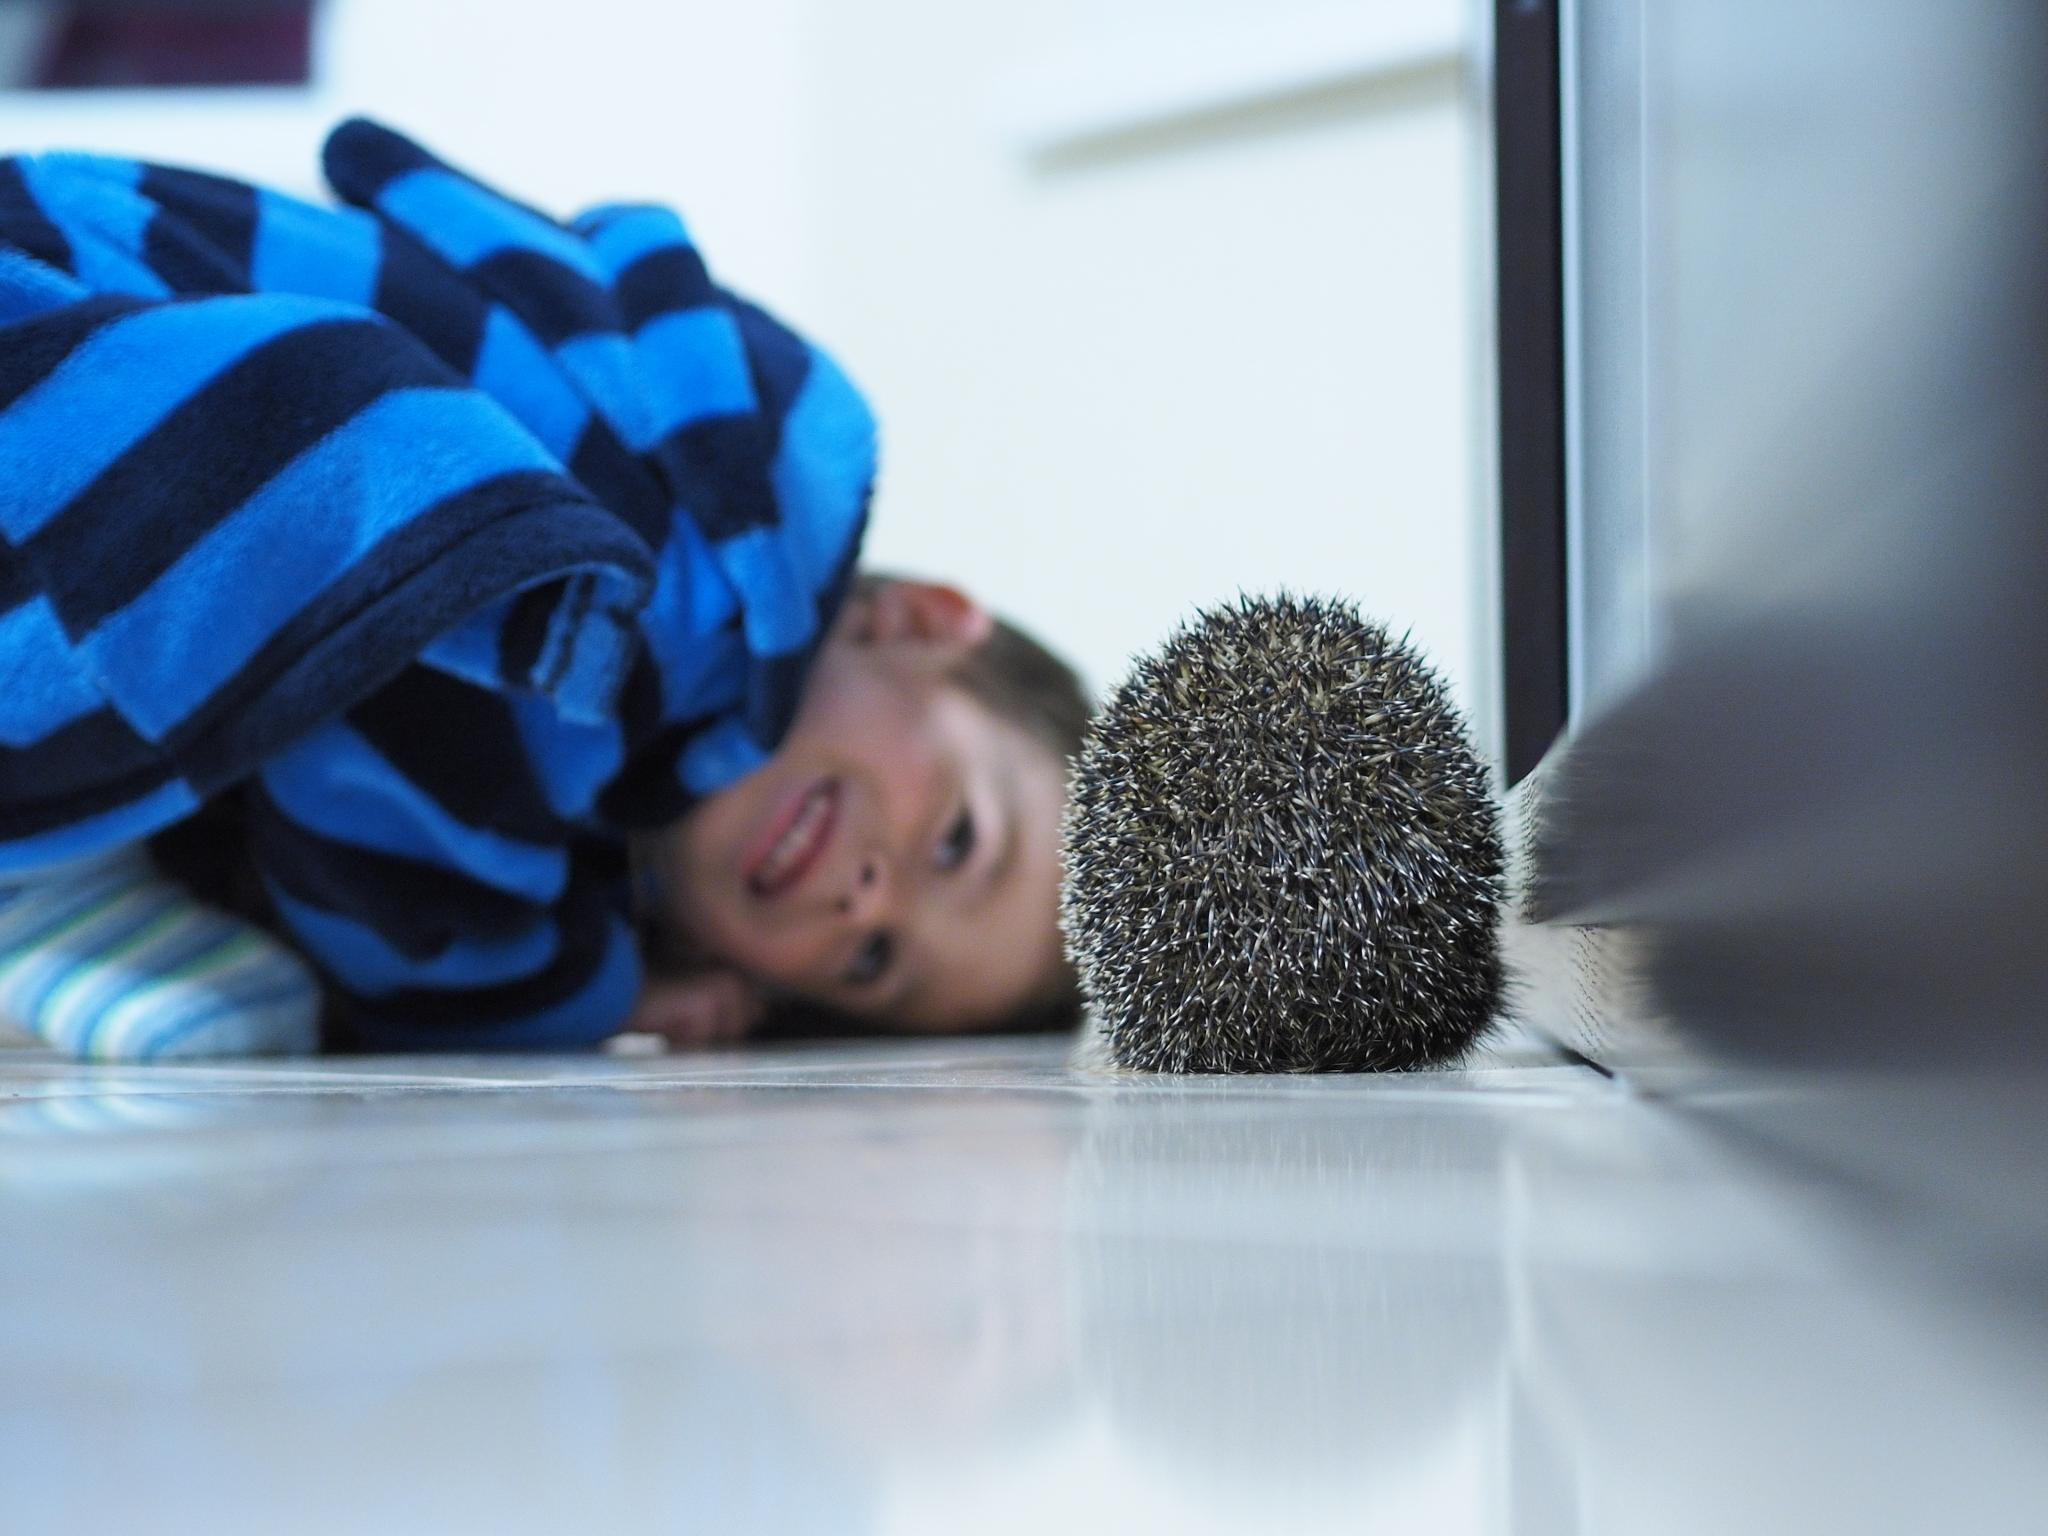 Hedgehog guest by Igor Marach